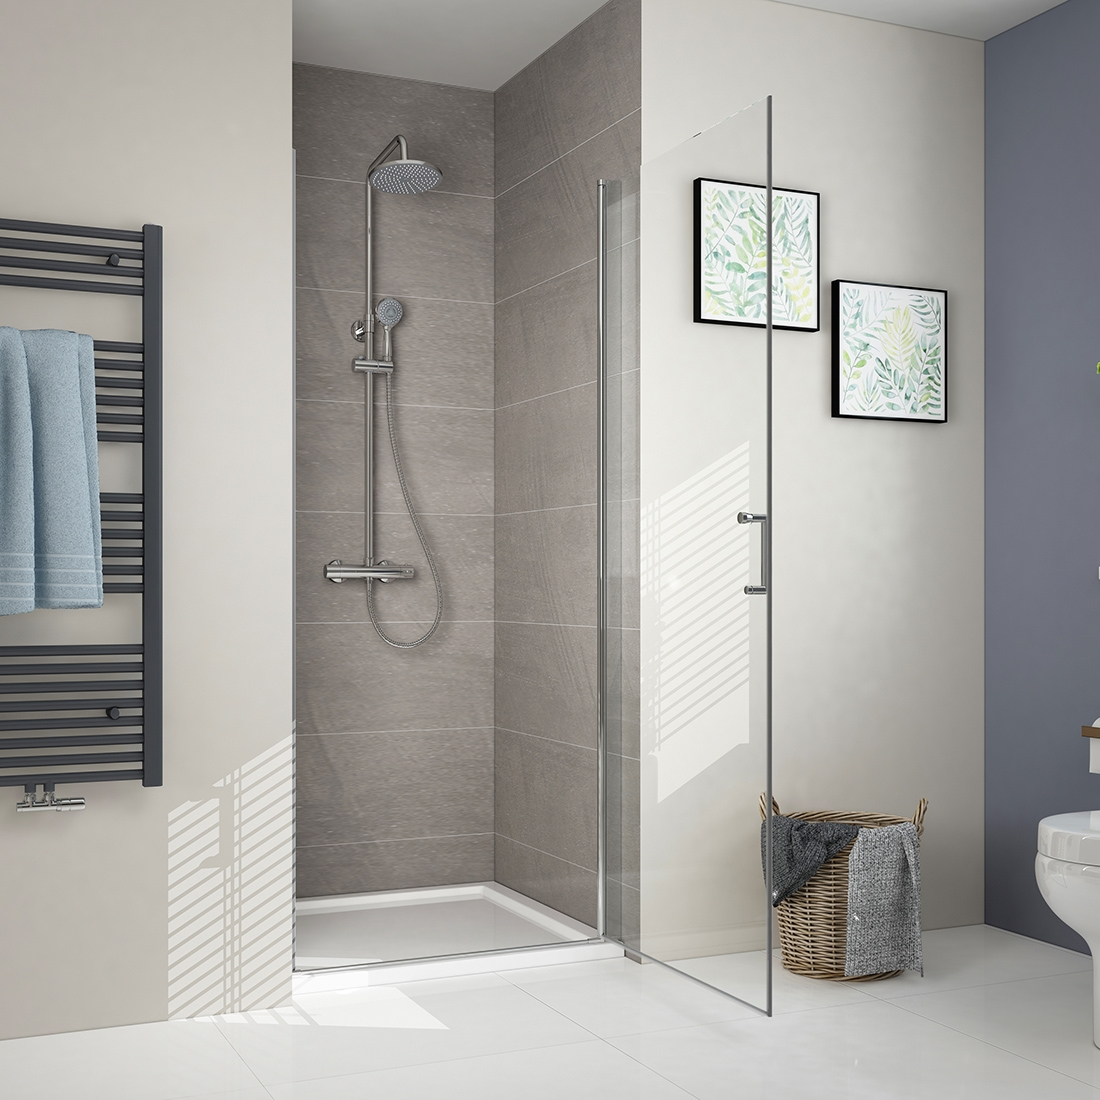 details about frameless pivot hinged 6mm glass shower enclosure cubicle modern bathroom uk